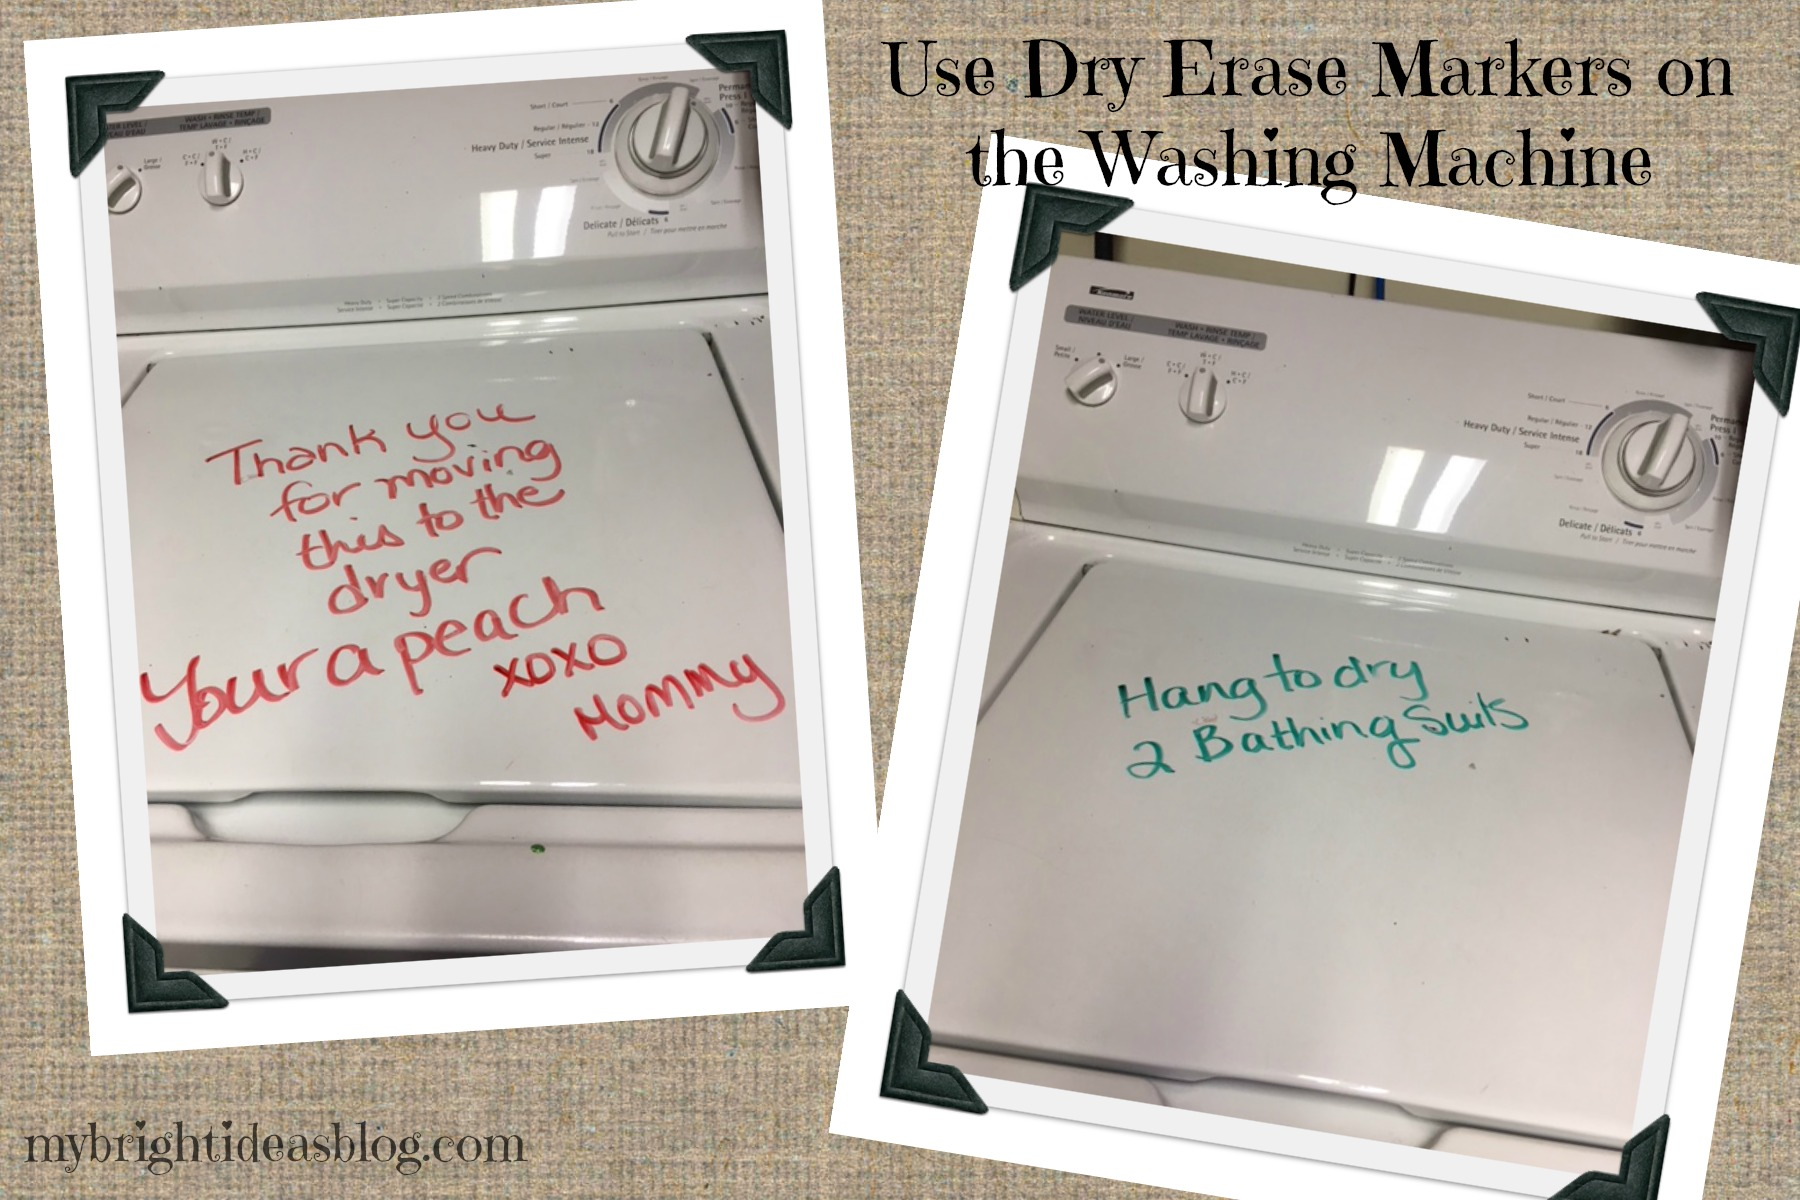 Leave a message on the washing machine with dry erase marker. Mybrightideasblog.com